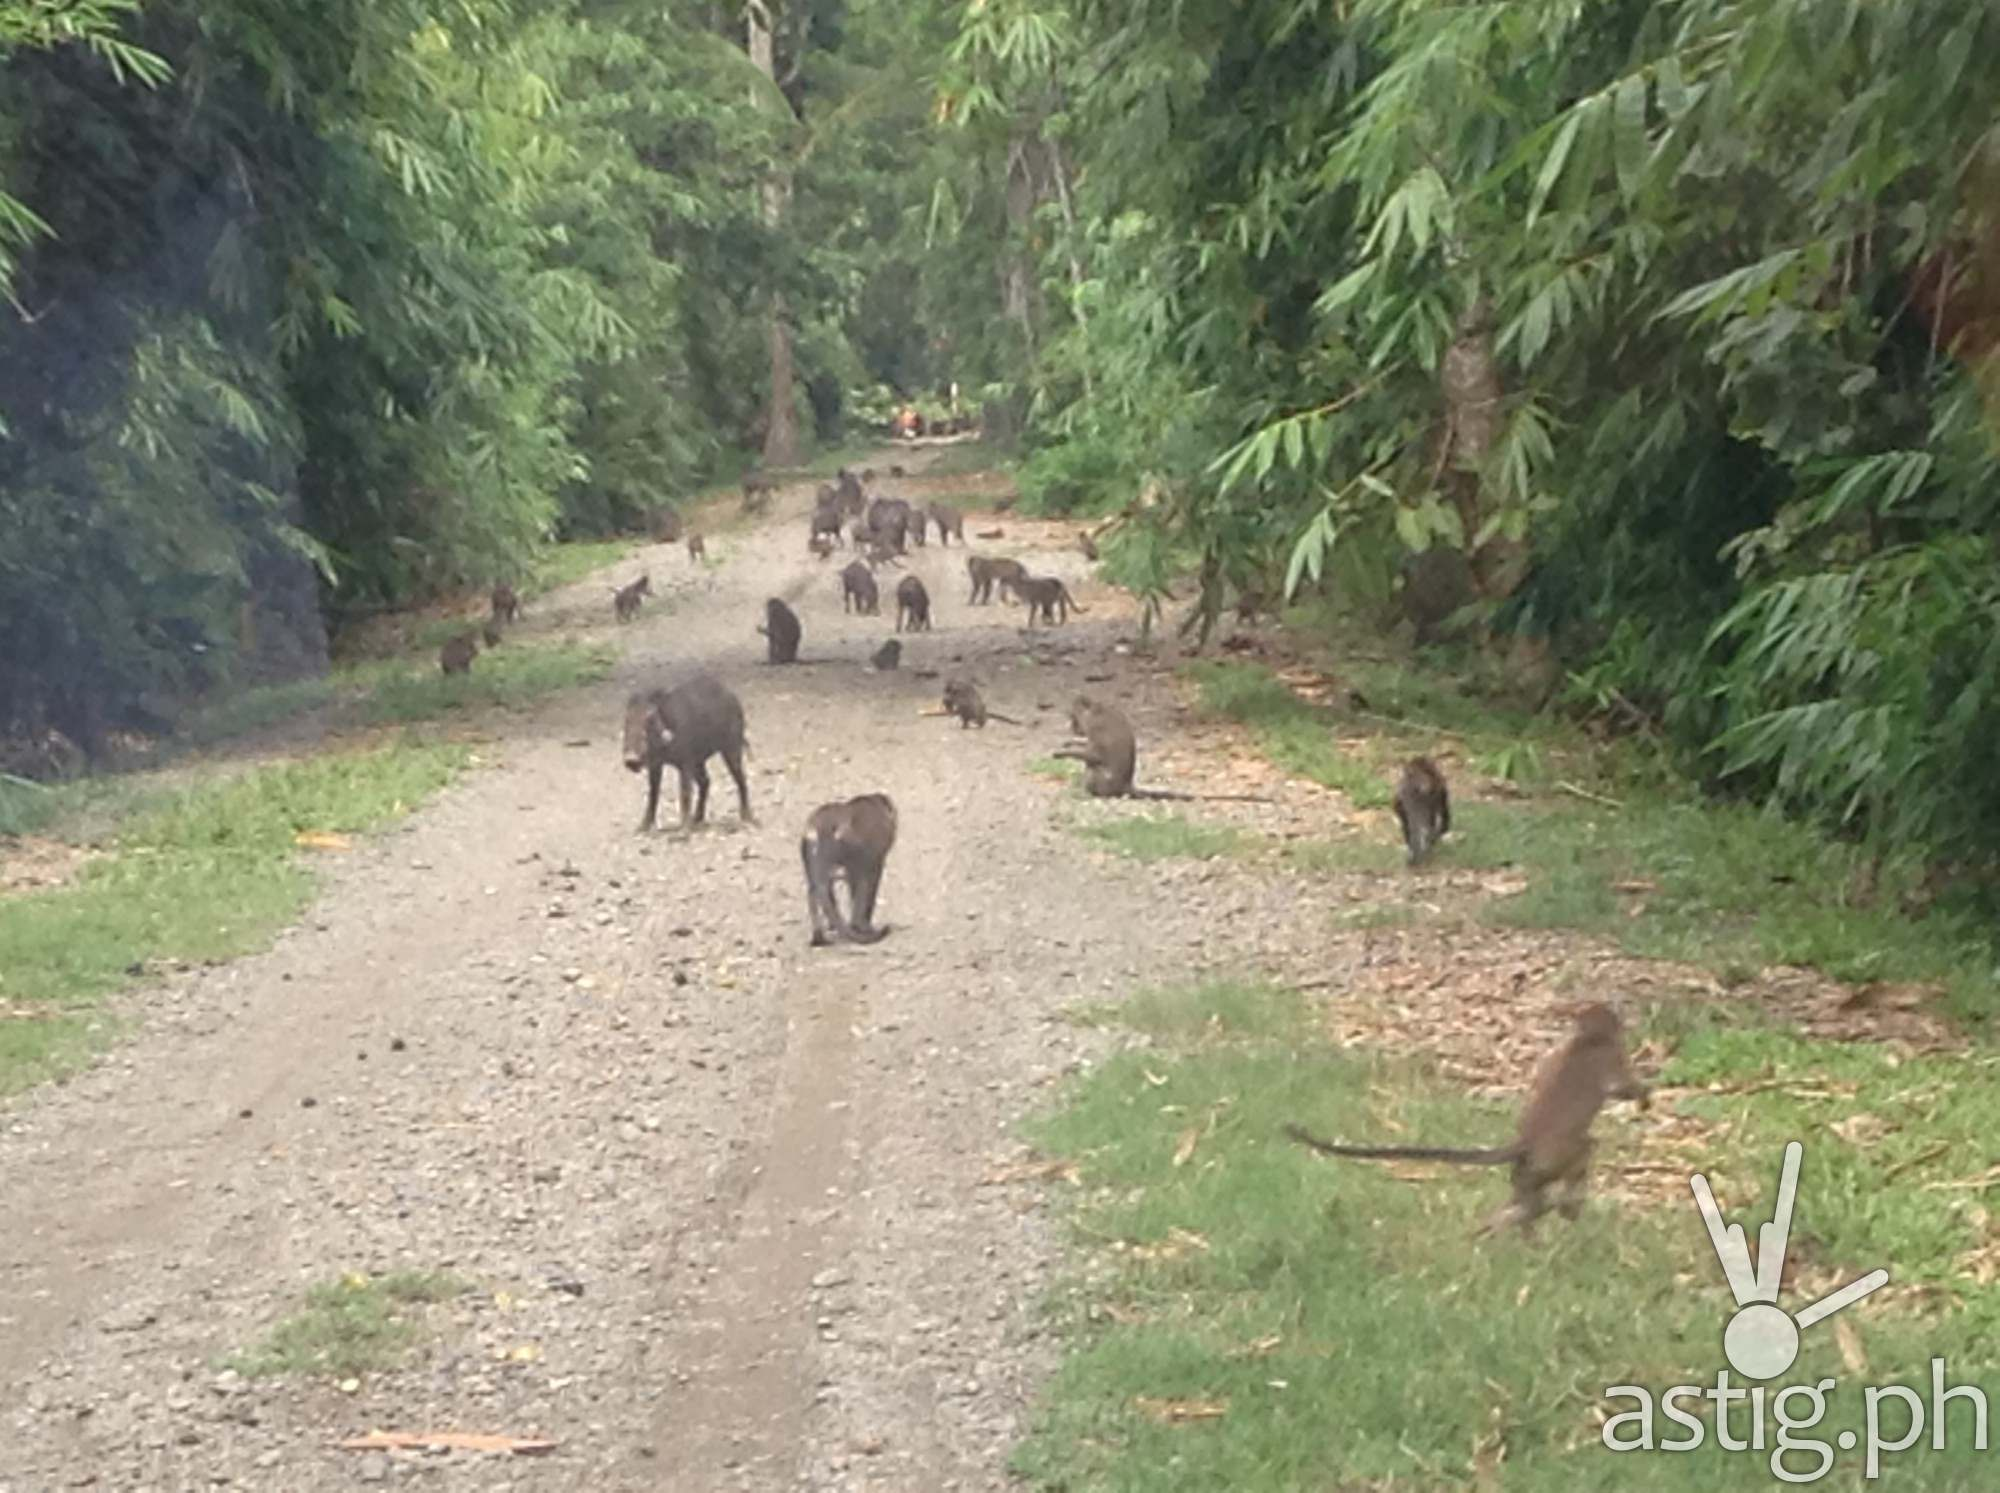 Long-tailed macaque monkeys and wild boars greet guests at Banana Beach doing the forest tour